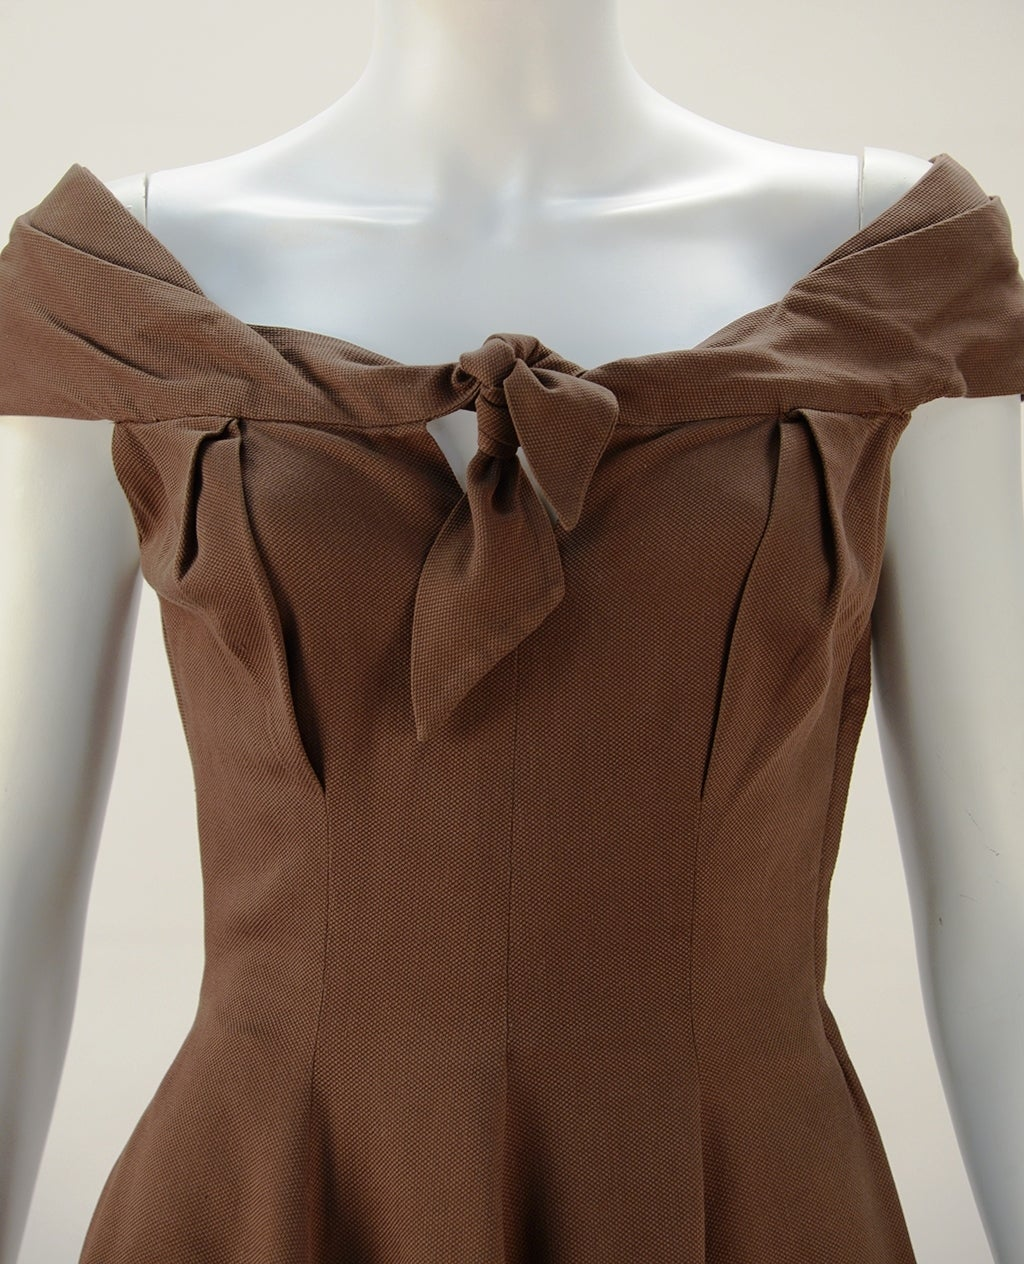 1930's Claire McCardell Brown Boatneck Dress 3